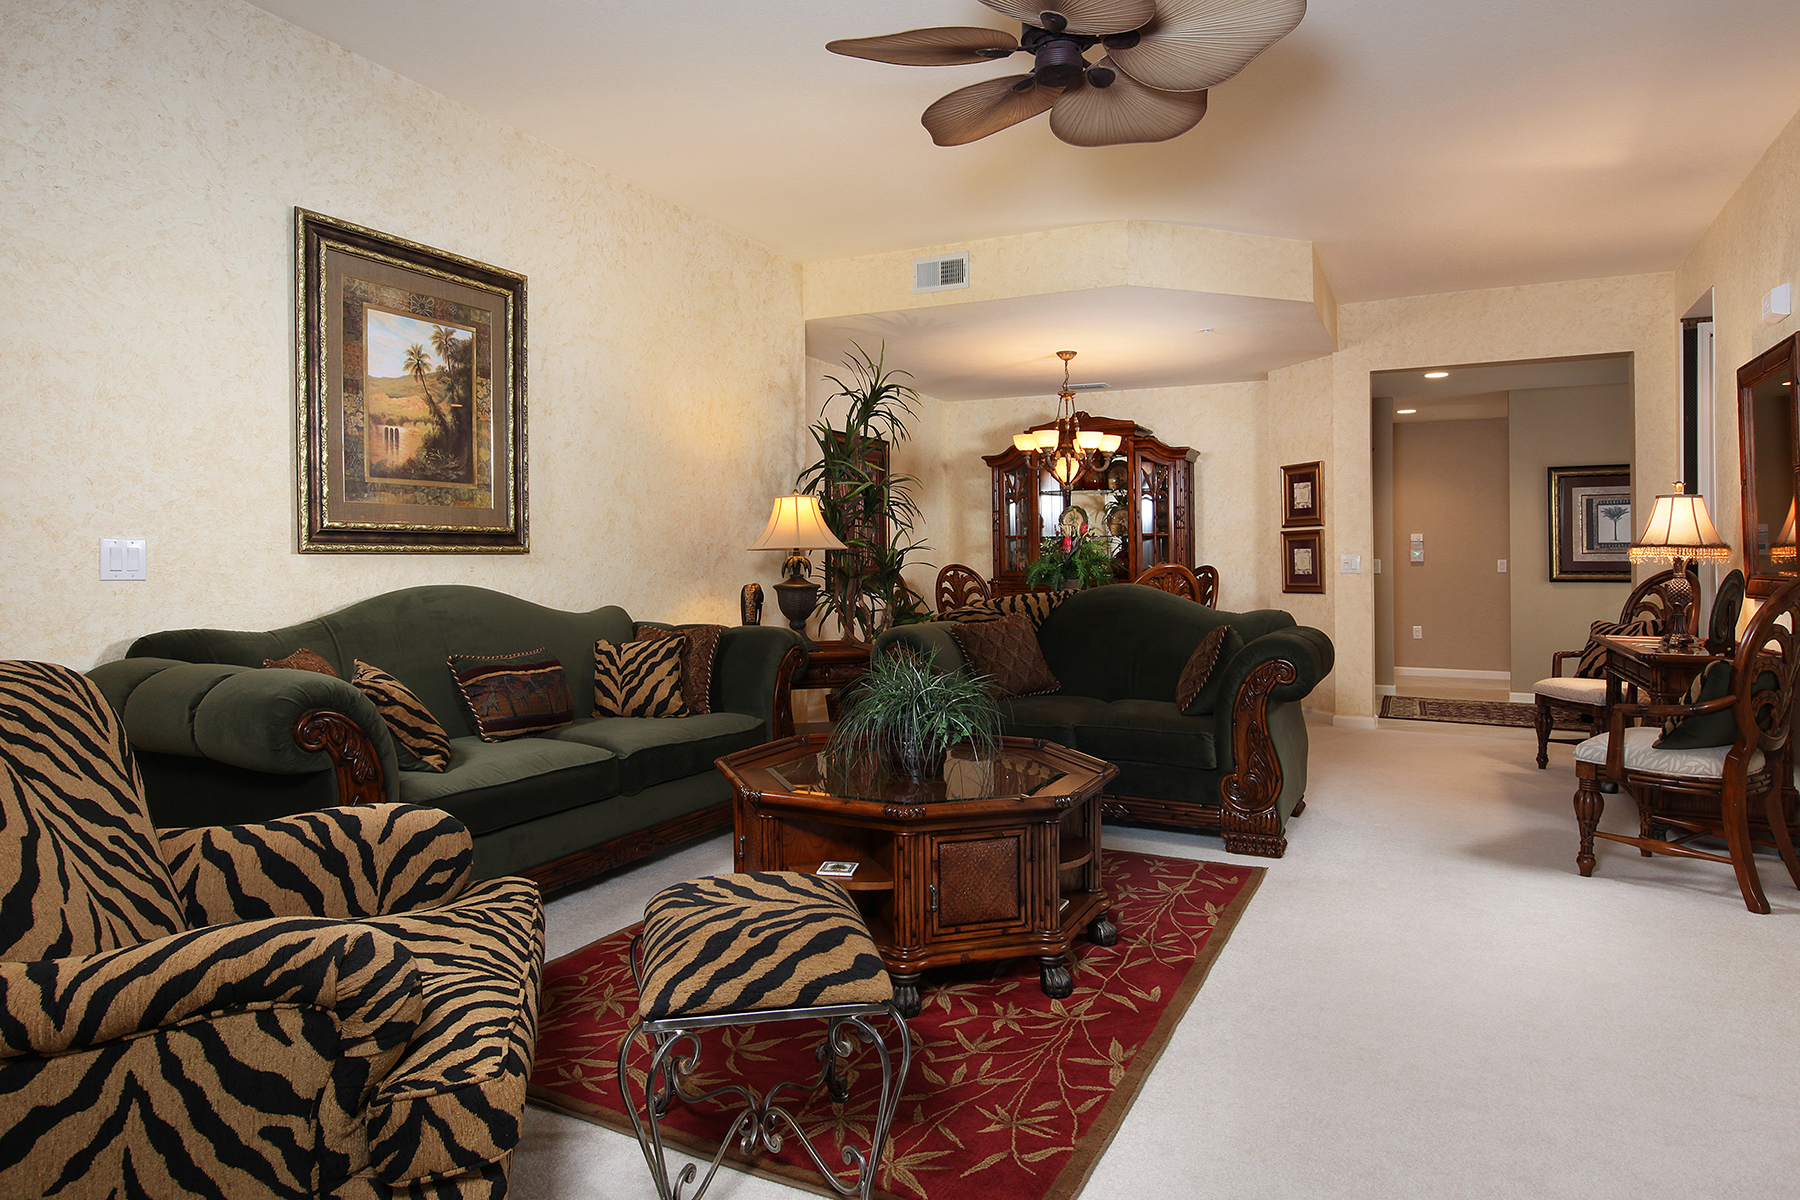 Condominium for Sale at FIDDLER'S CREEK - DEER CROSSING 3985 Deer Crossing Ct 101 Naples, Florida, 34114 United States